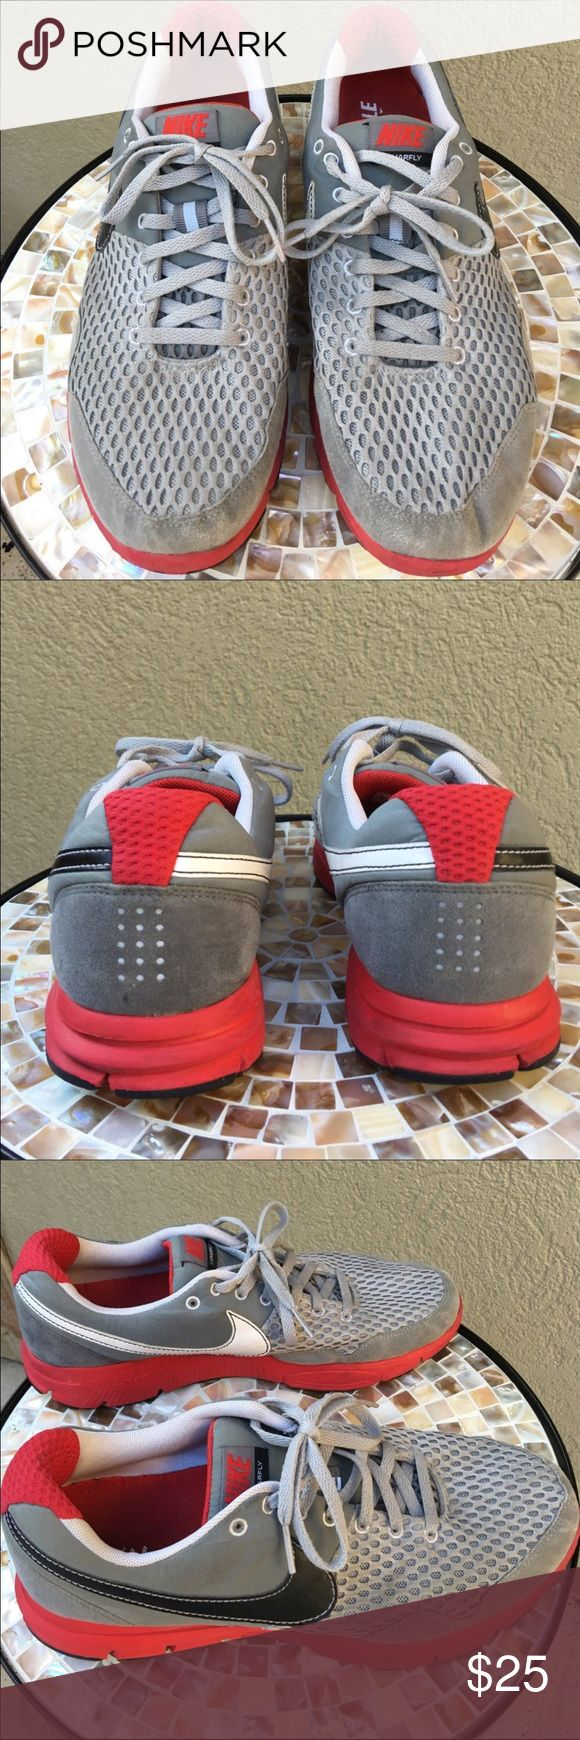 🆕Nike Men's Lunarfly Tennis Shoes Men's Nike Lunarfly tennis shoes - Grey & Red with black accent colors  tennis shoes.EUC  ✅I ship same or next day ✅Bundle for discount Nike Shoes Sneakers